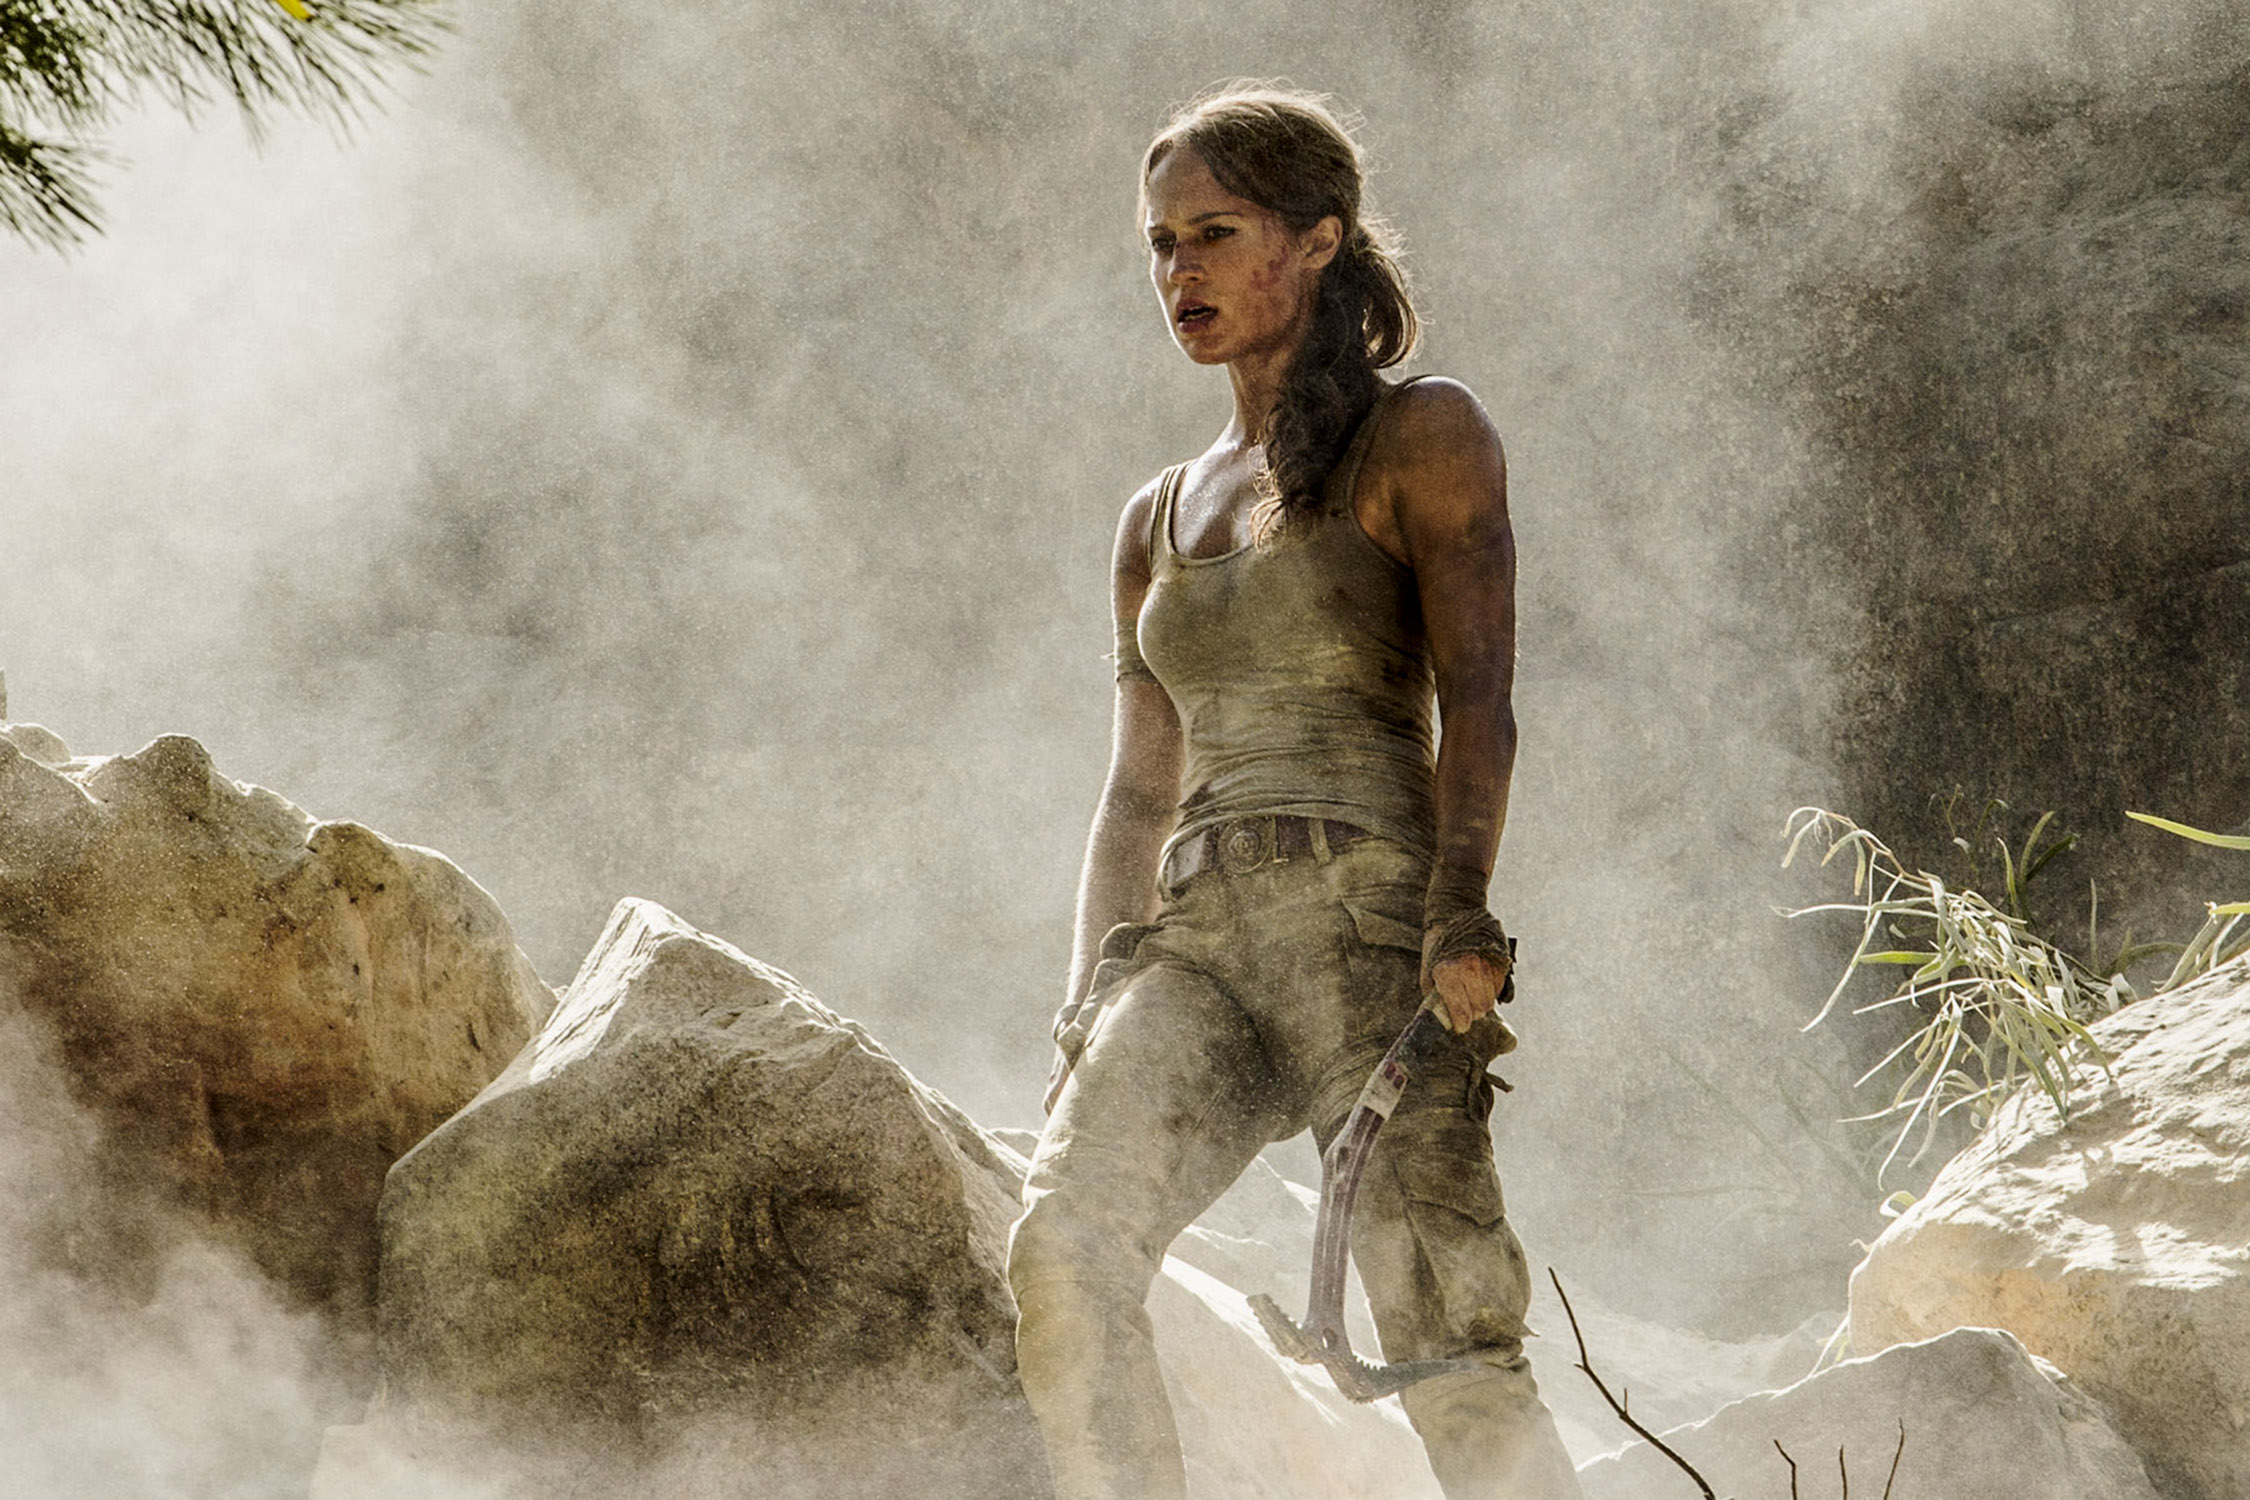 Photo of Alicia Vikander in Tomb Raider